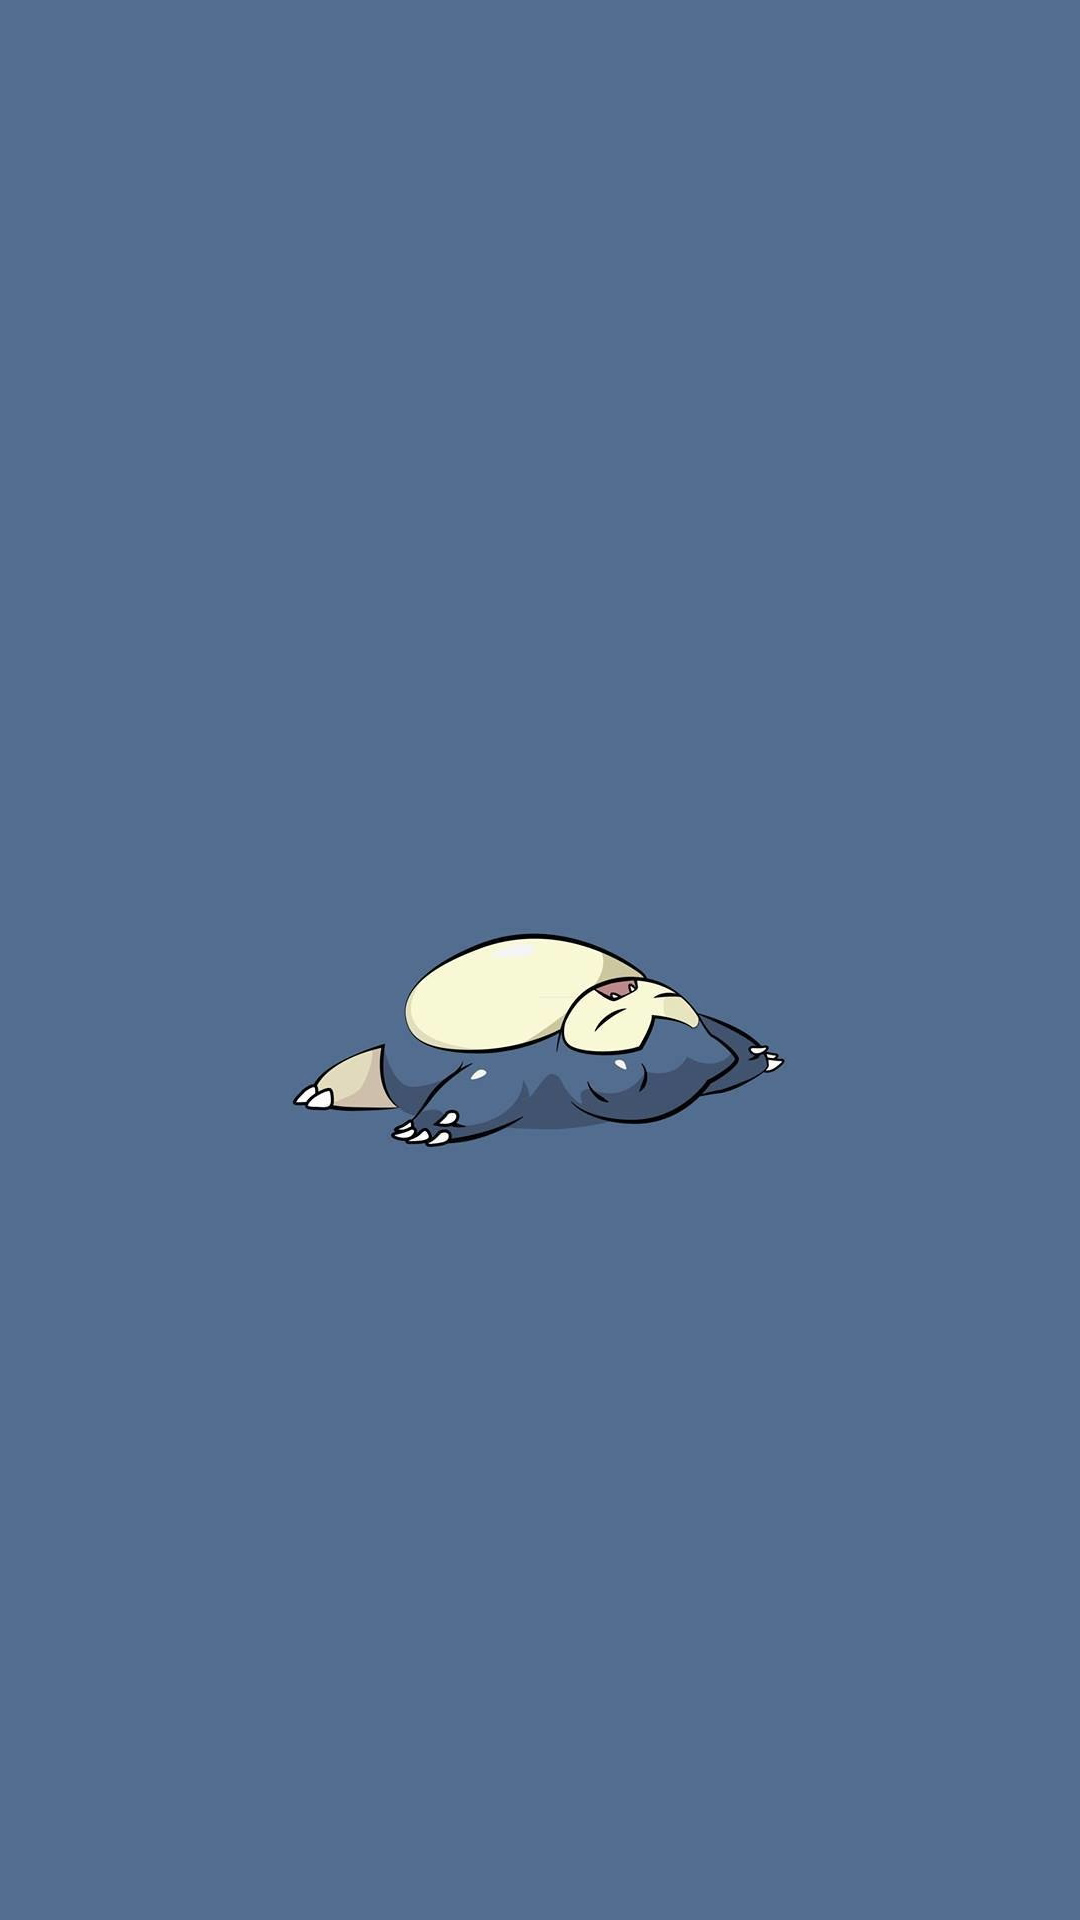 Snorlax Pokemon Iphone 7 Wallpaper Iphone Wallpaper